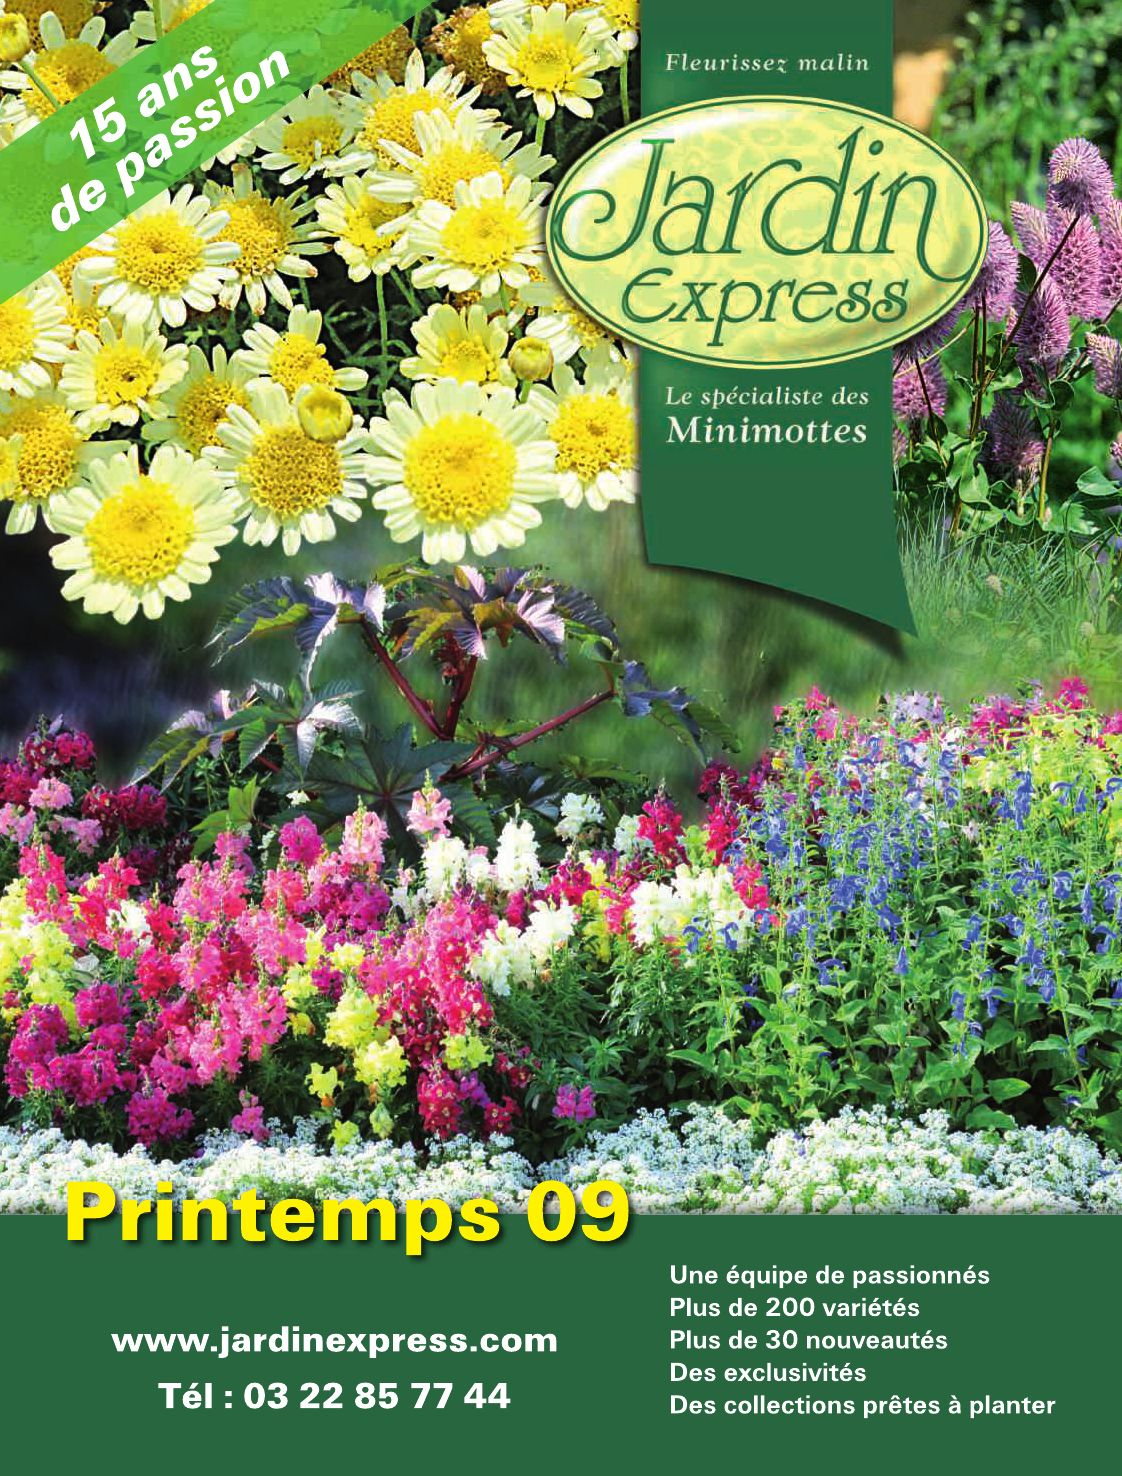 Catalogue jardin express printemps 2009 by dpdh dpdh issuu for Jardin express